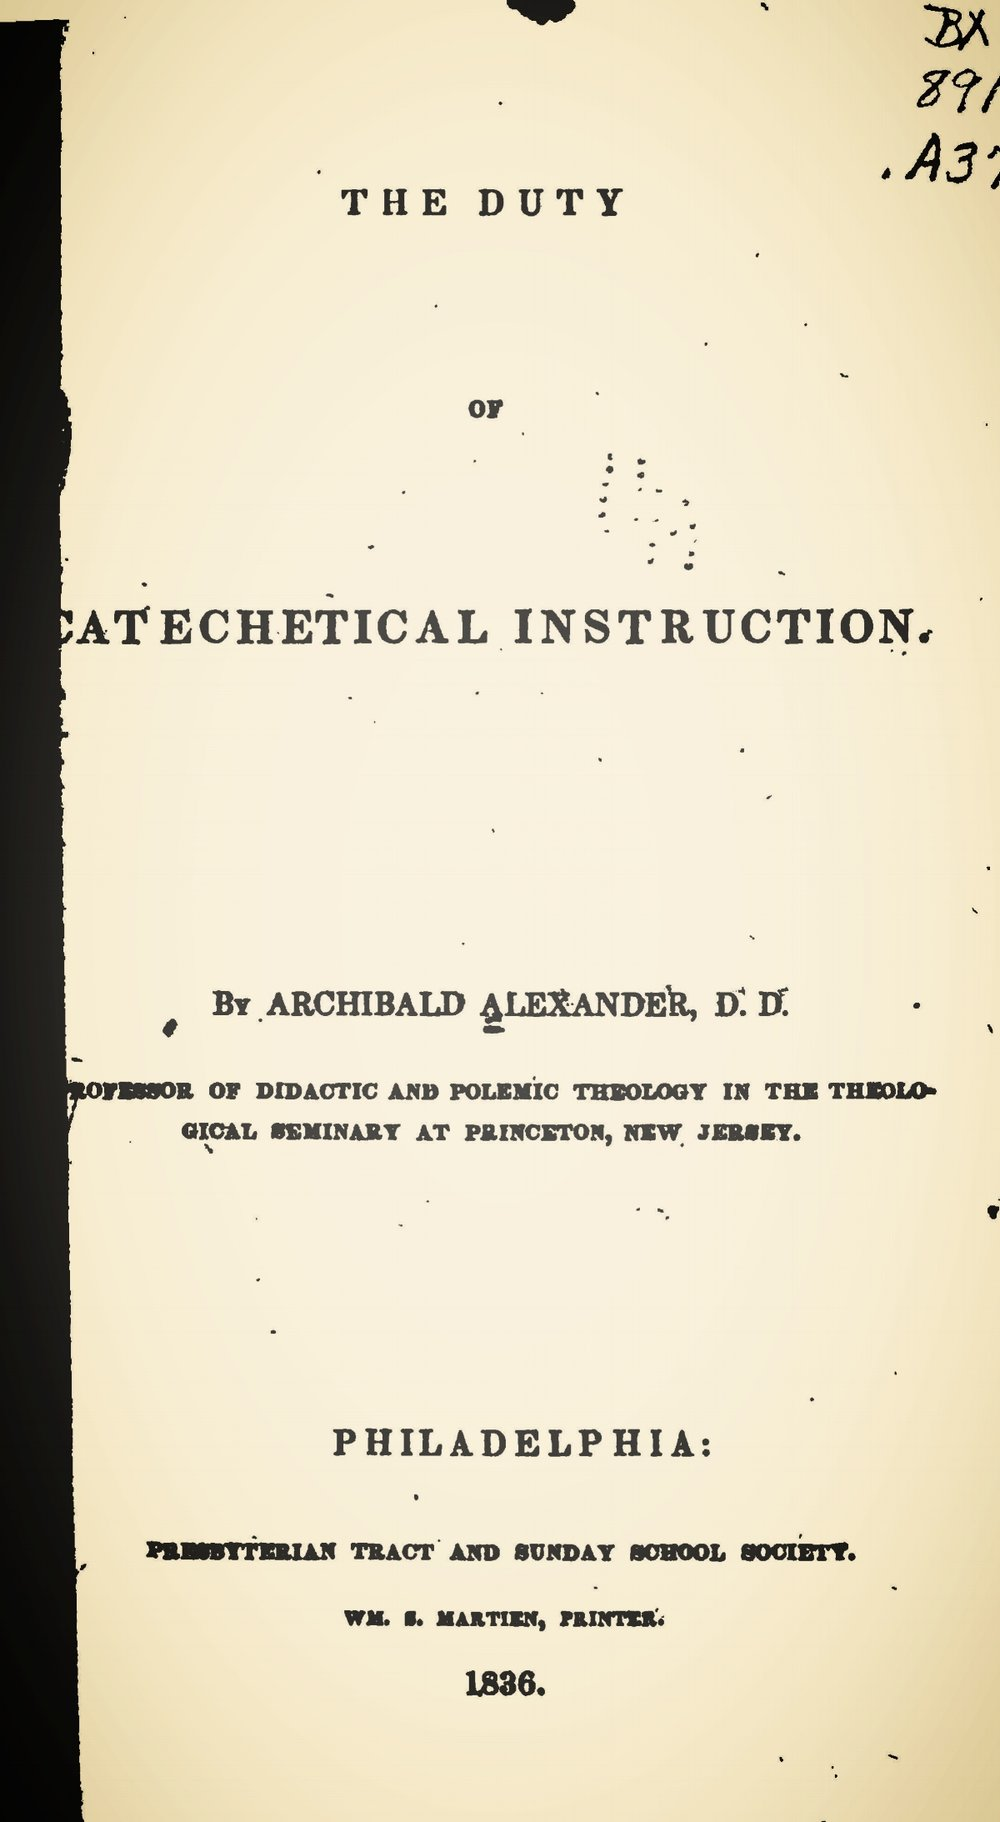 Alexander, Archibald, The Duty of Catechetical Instruction Title Page.jpg